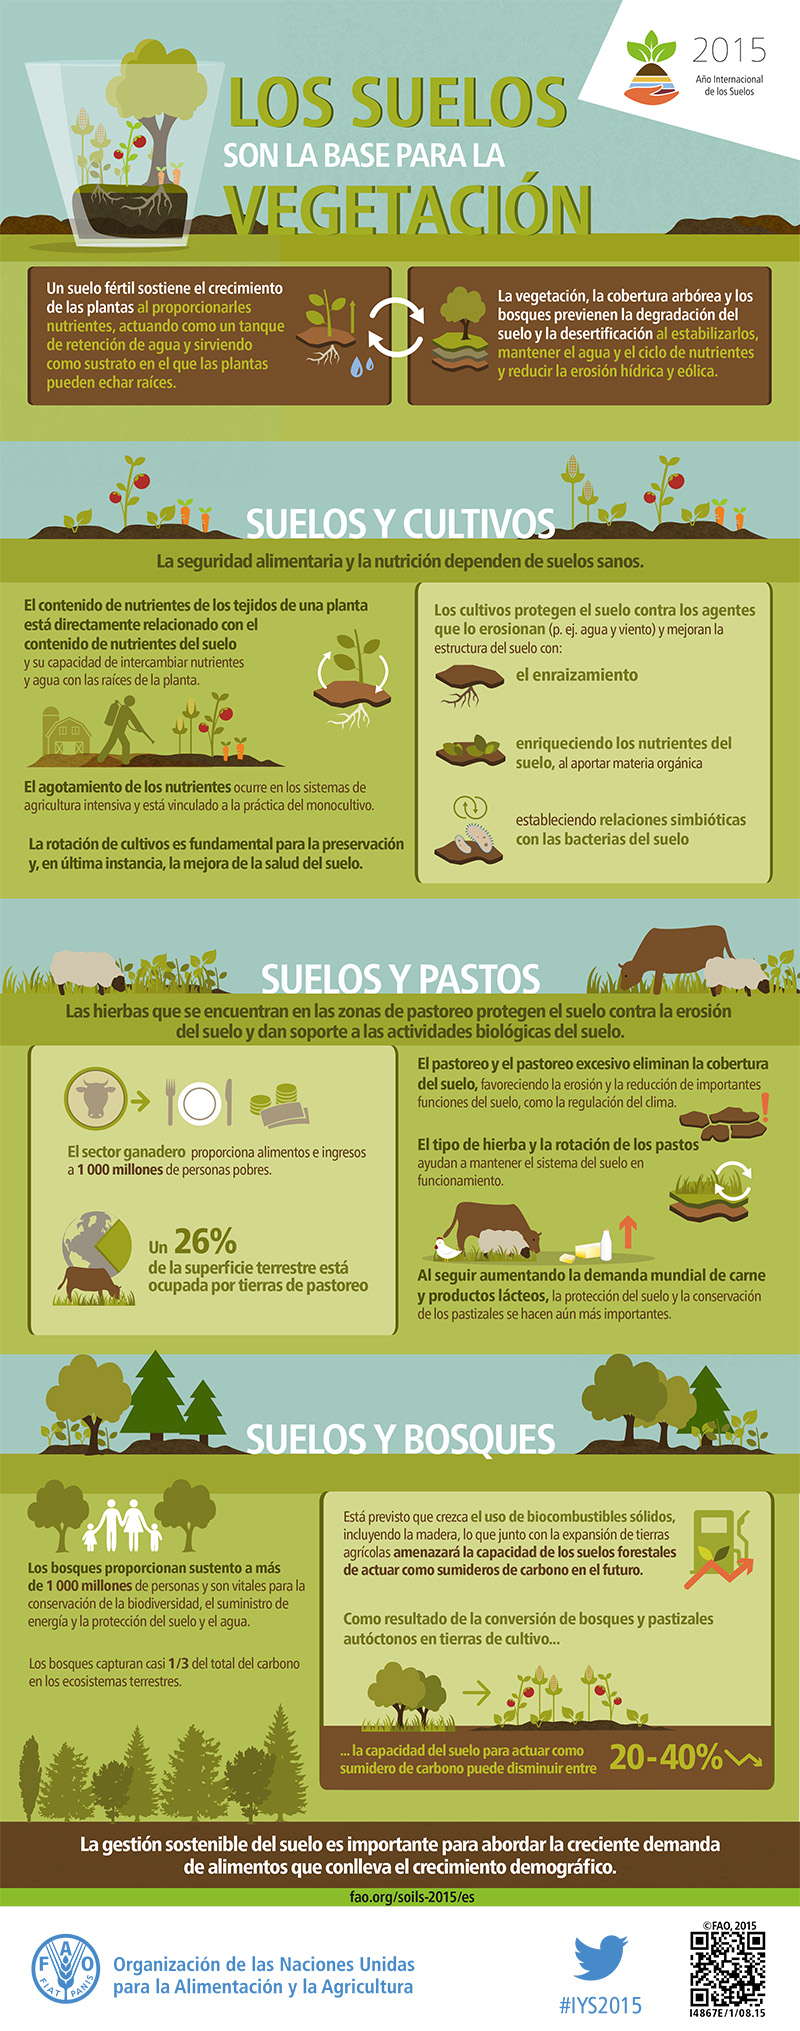 FAO-Infographic-IYS2015-fs4-es-01